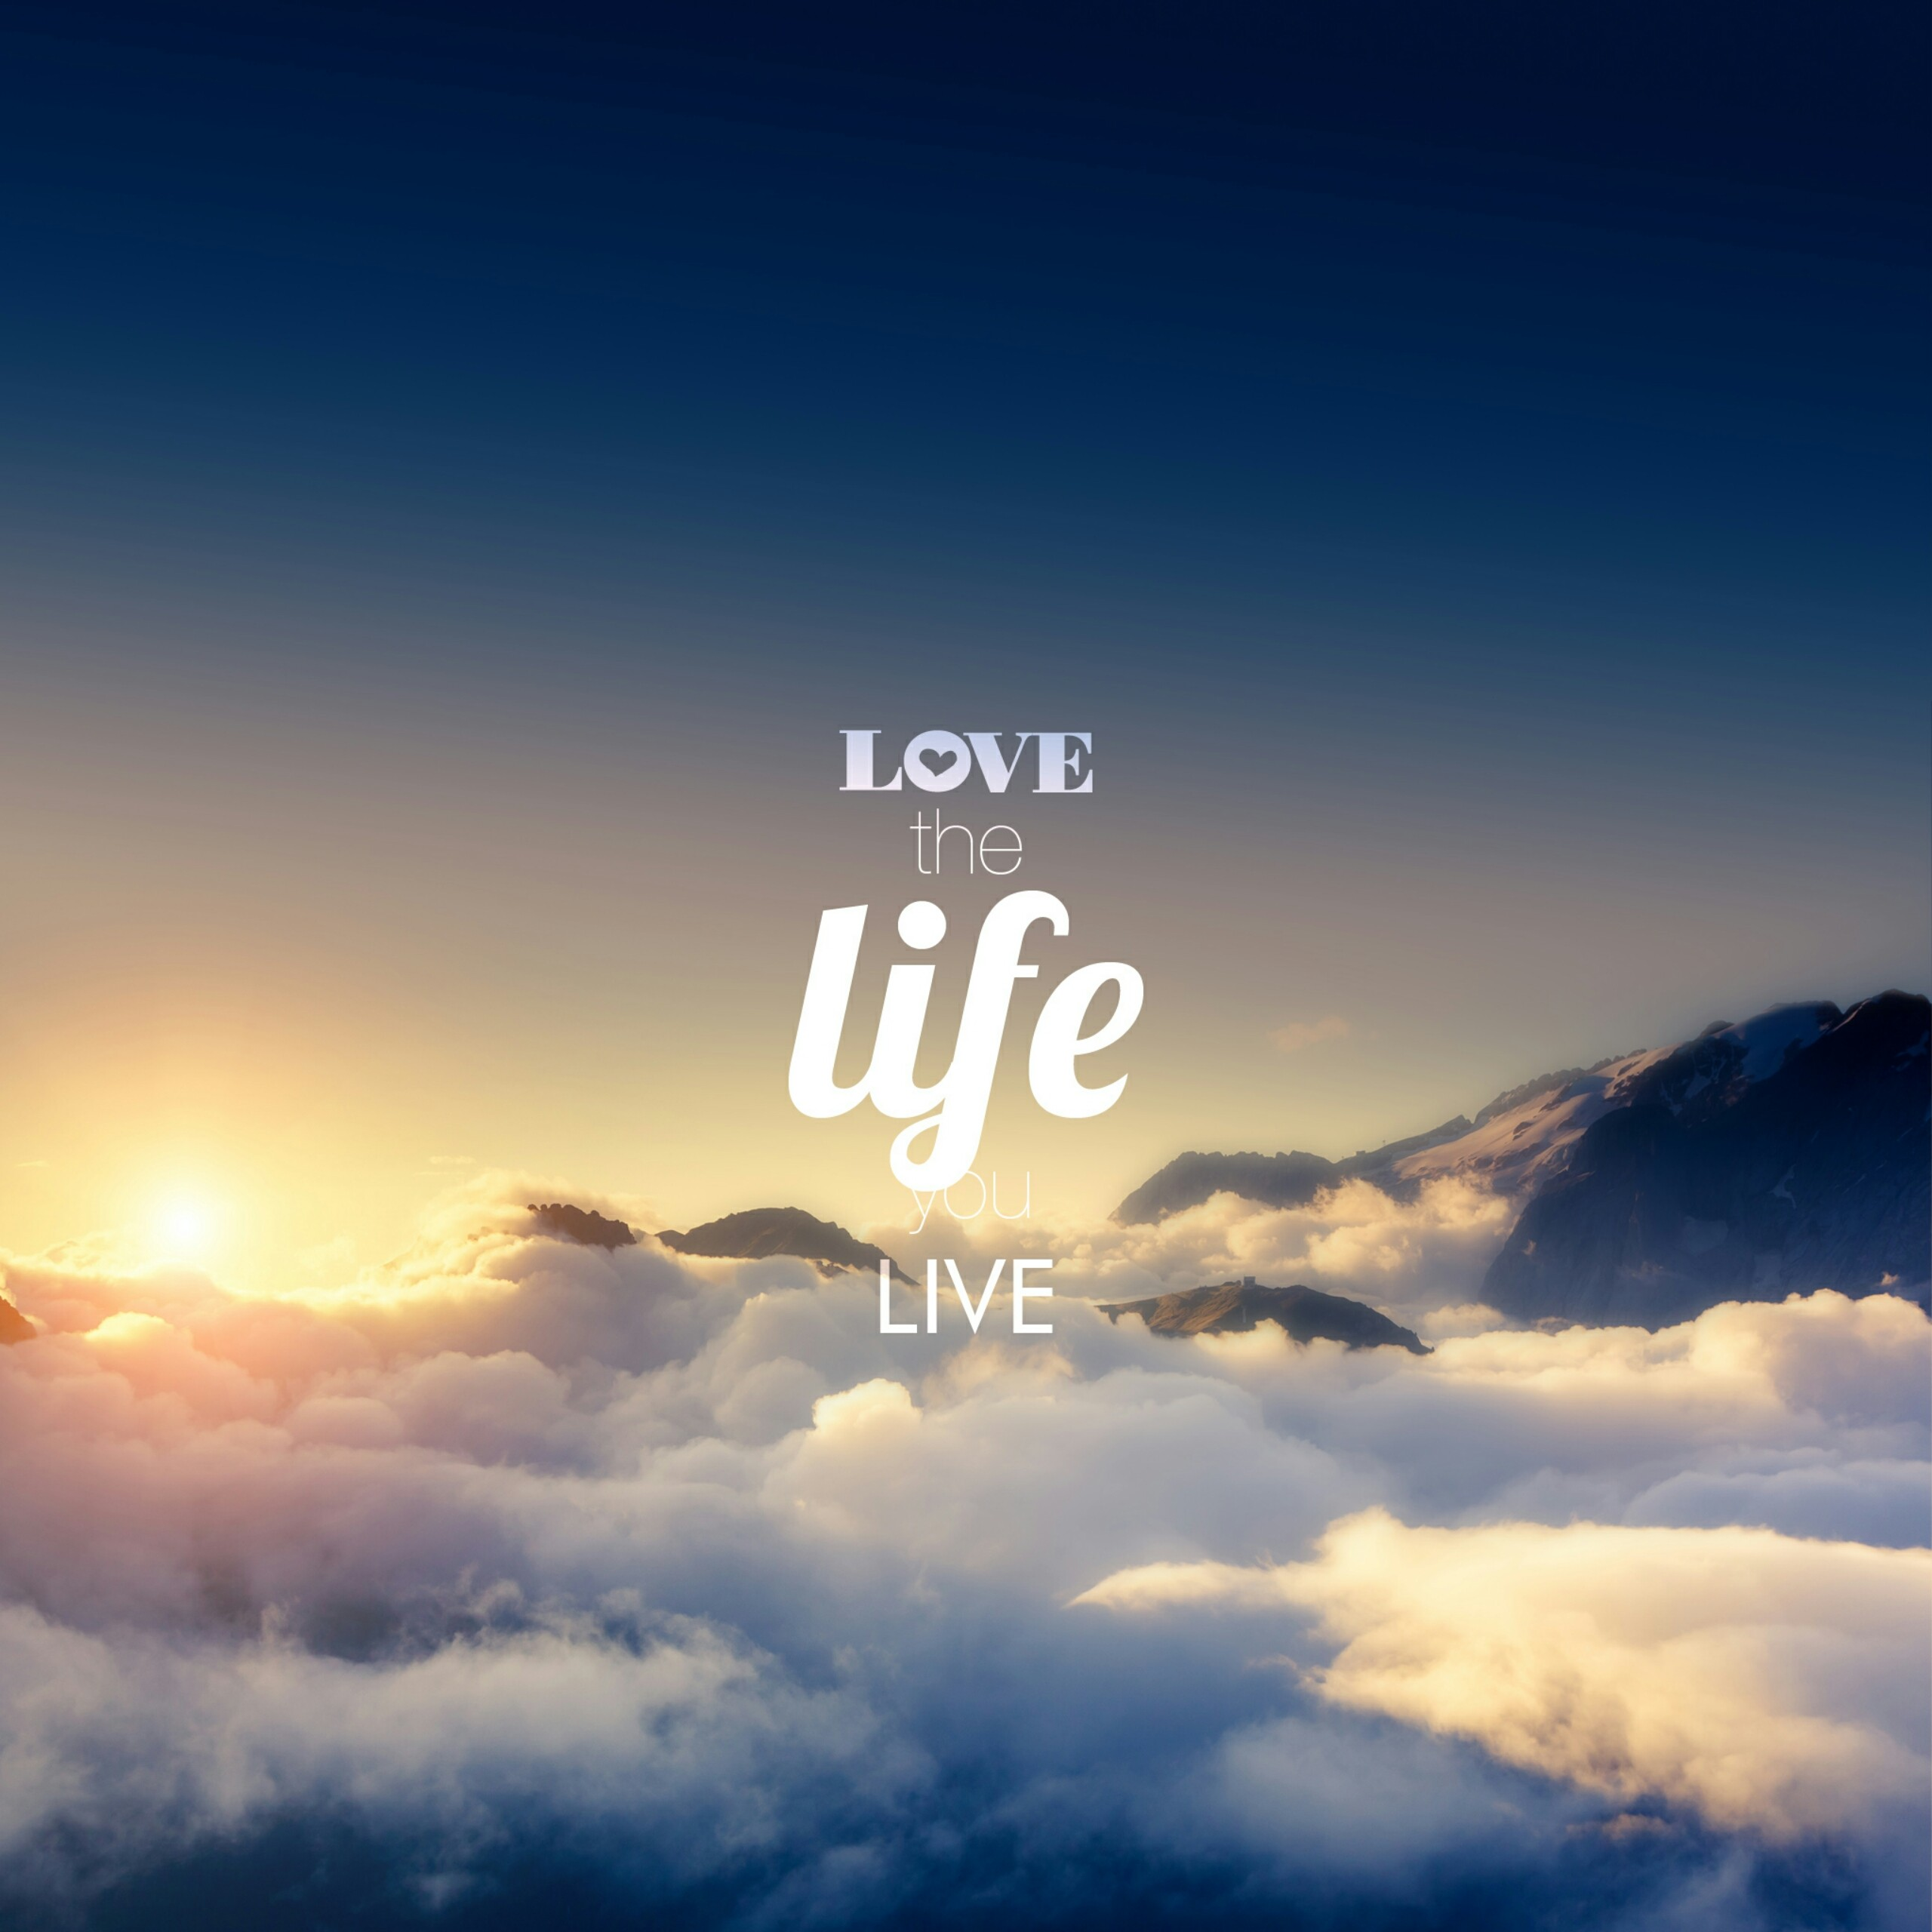 Love the Life You Live Quotes QHD Wallpaper